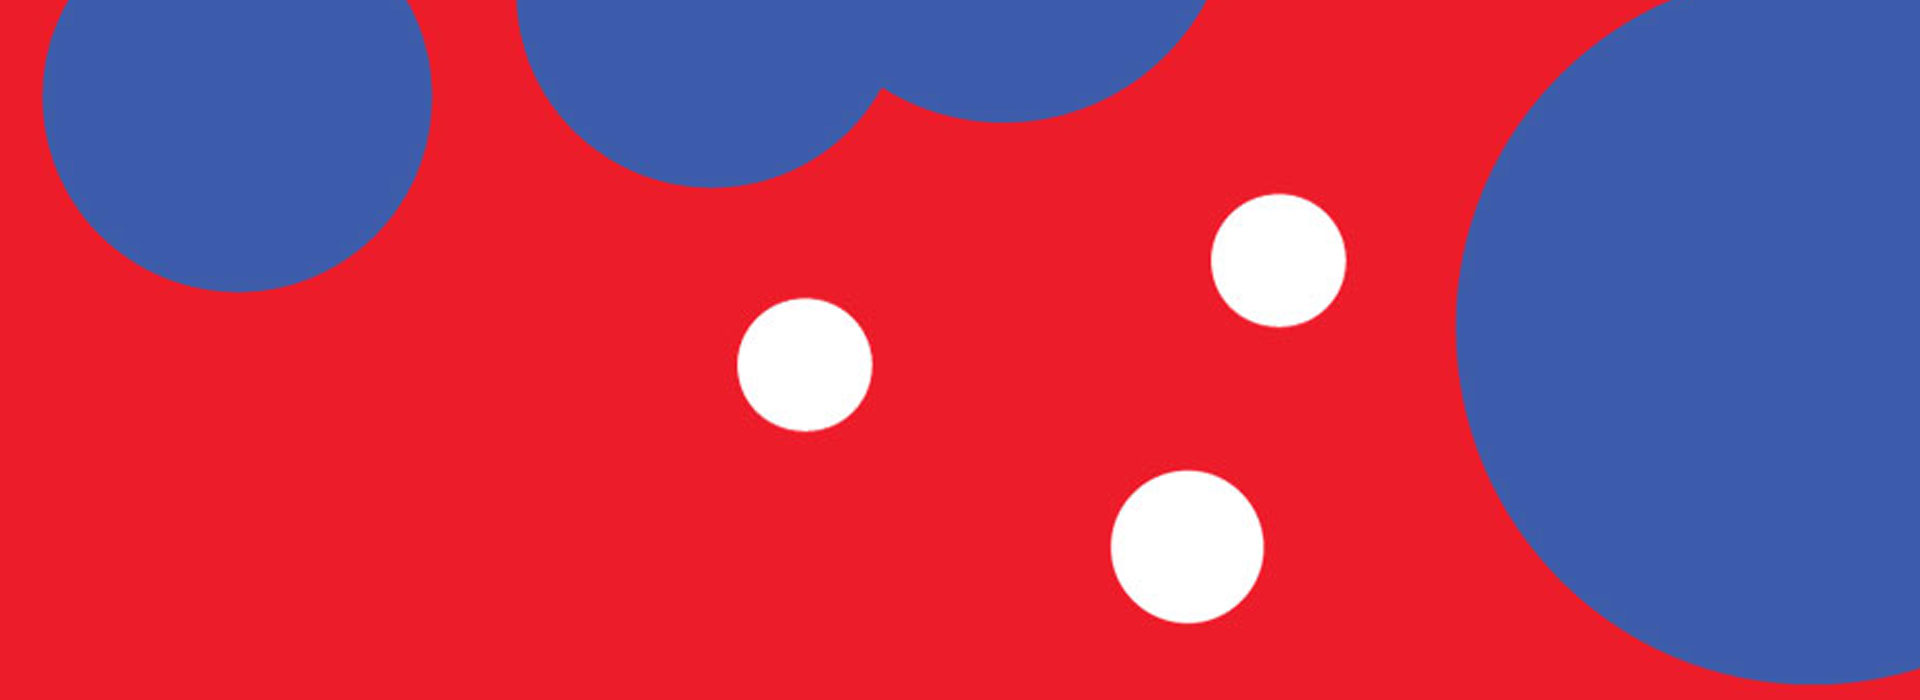 Blue and white circles on a red background